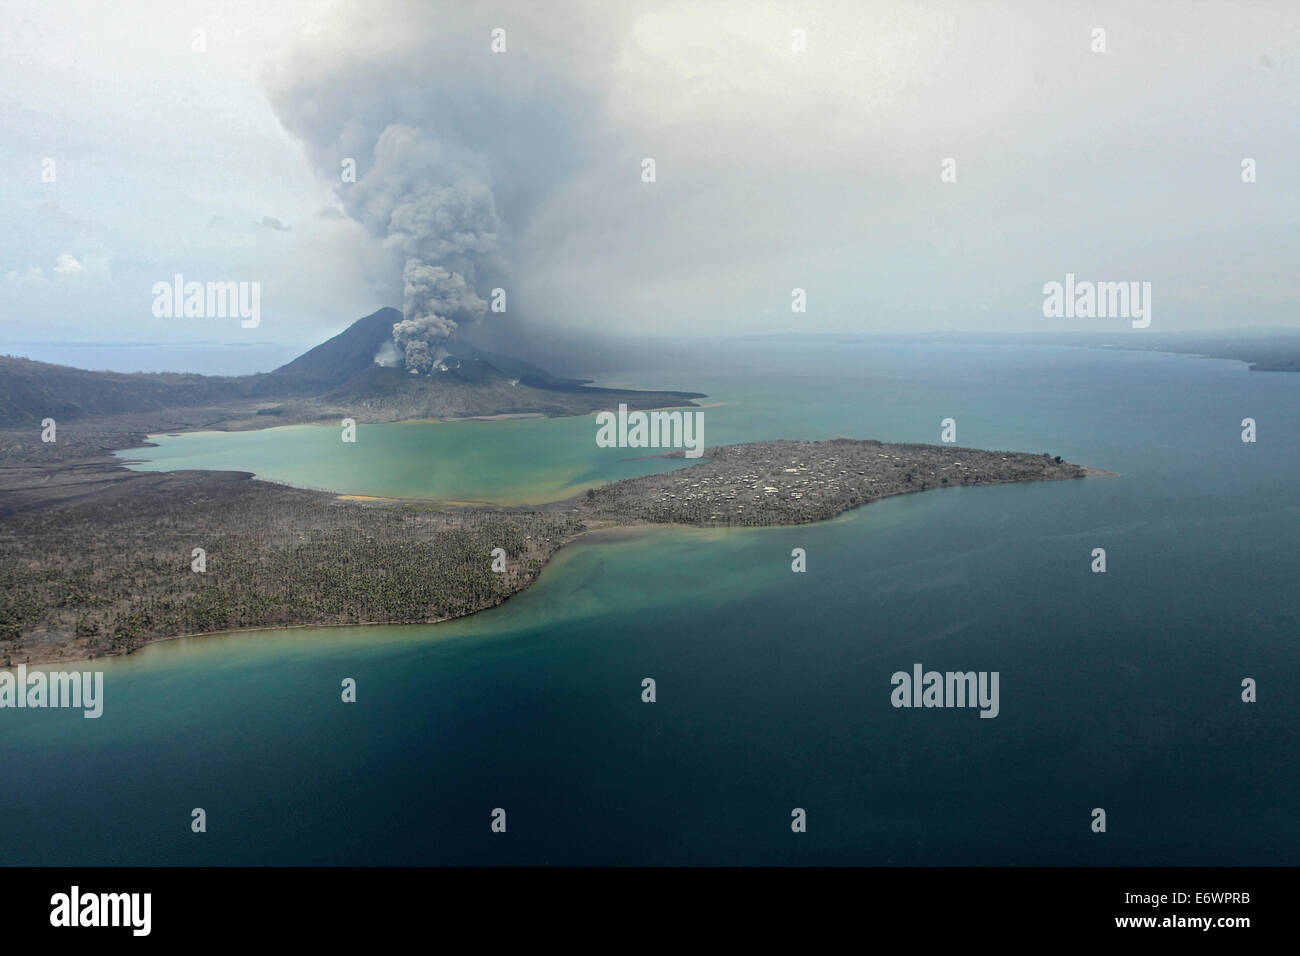 Tavurvur volcano and surroundings. Tavurvur Volcano, Rabaul, East New Britain, Papua New Guinea, Pacific - Stock Image